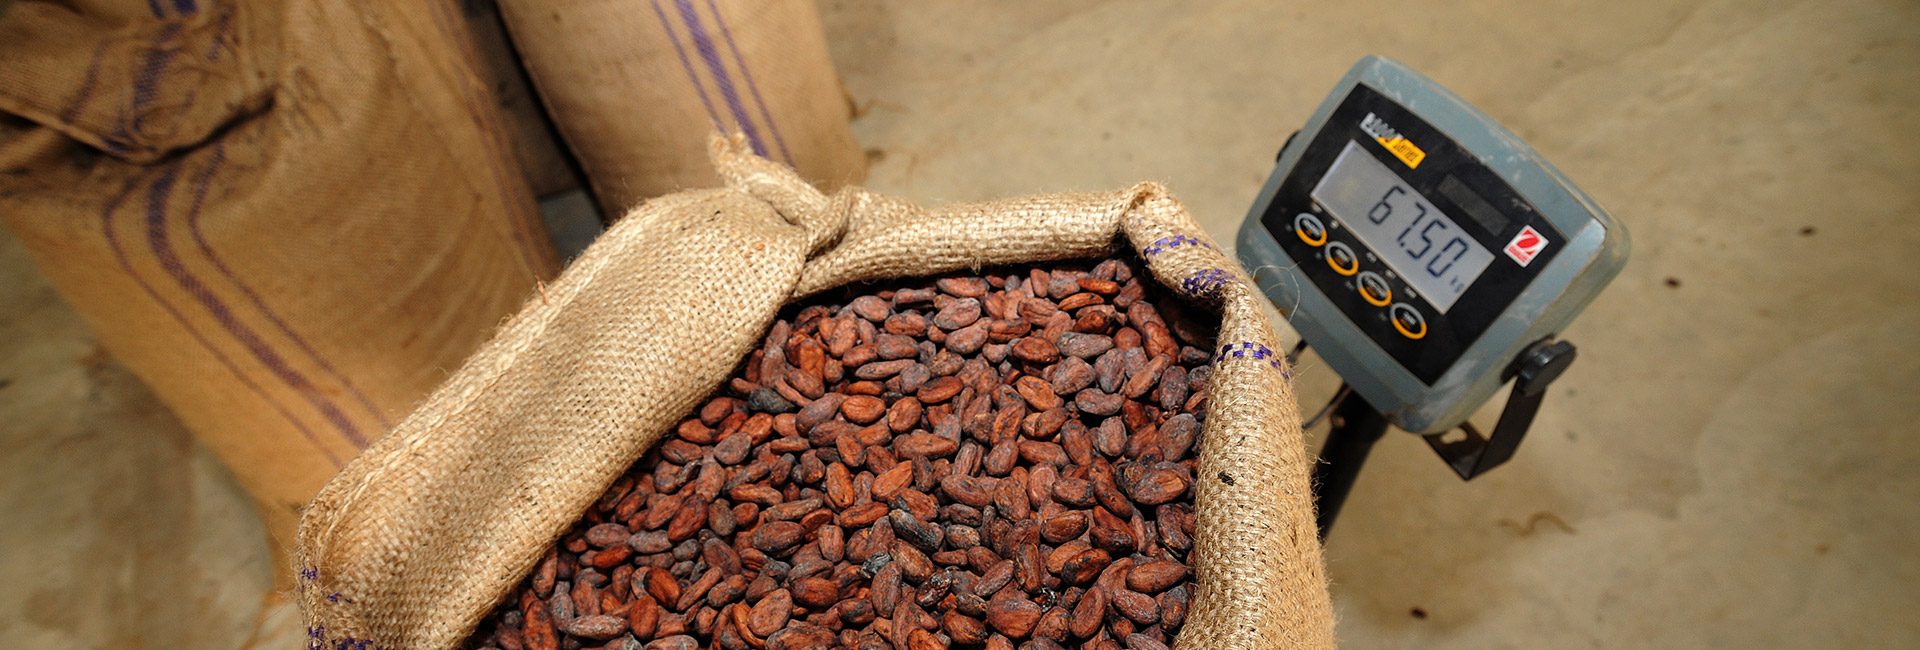 cocoa beans weighing scale